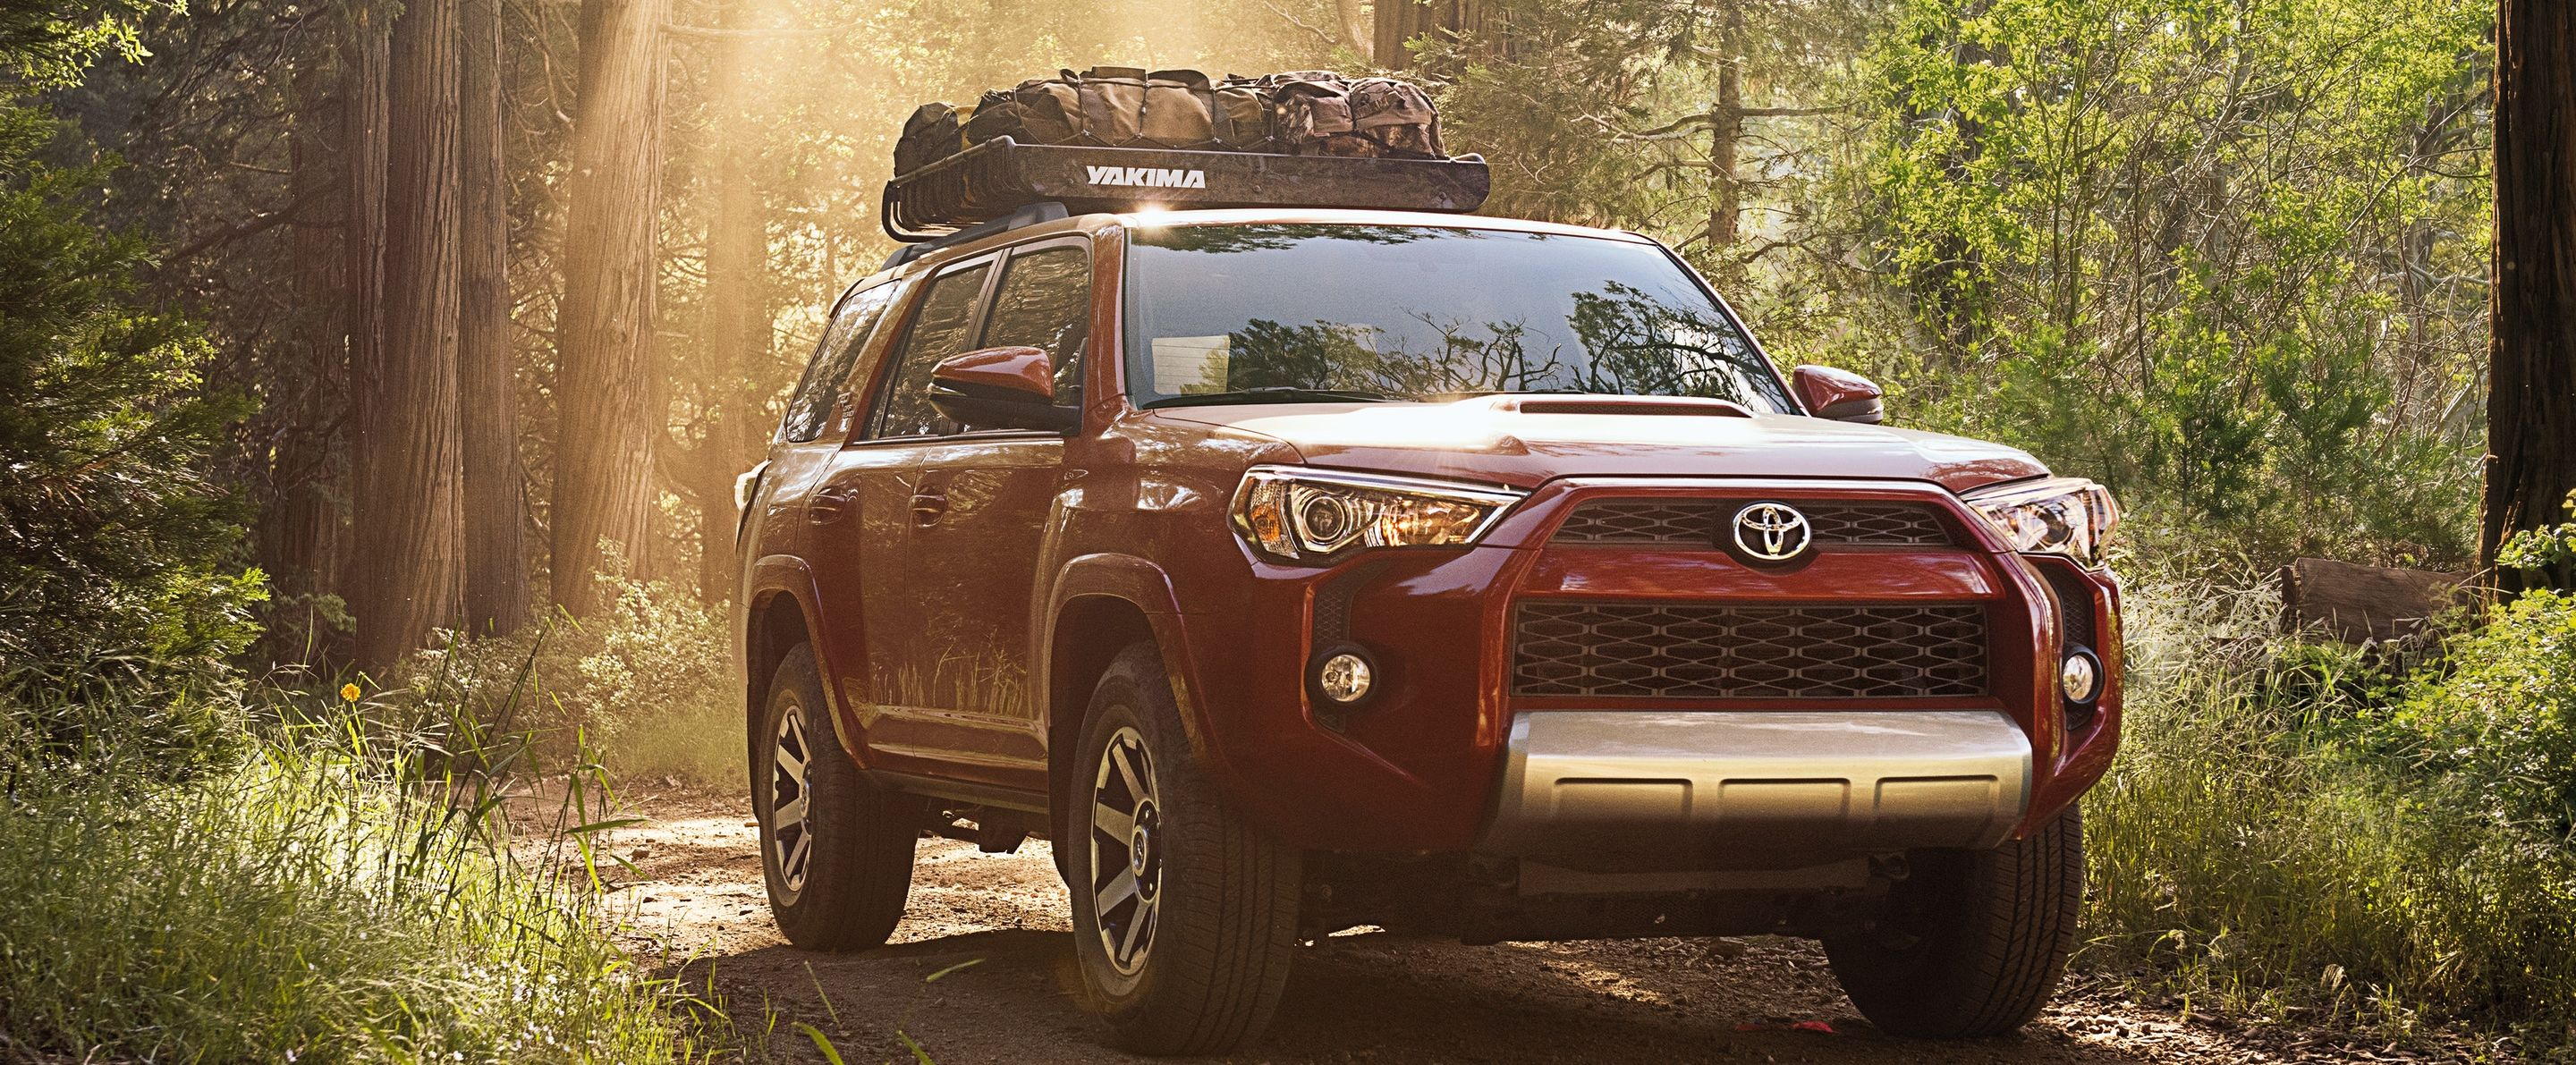 2019 Toyota 4Runner for Sale near West Des Moines, IA